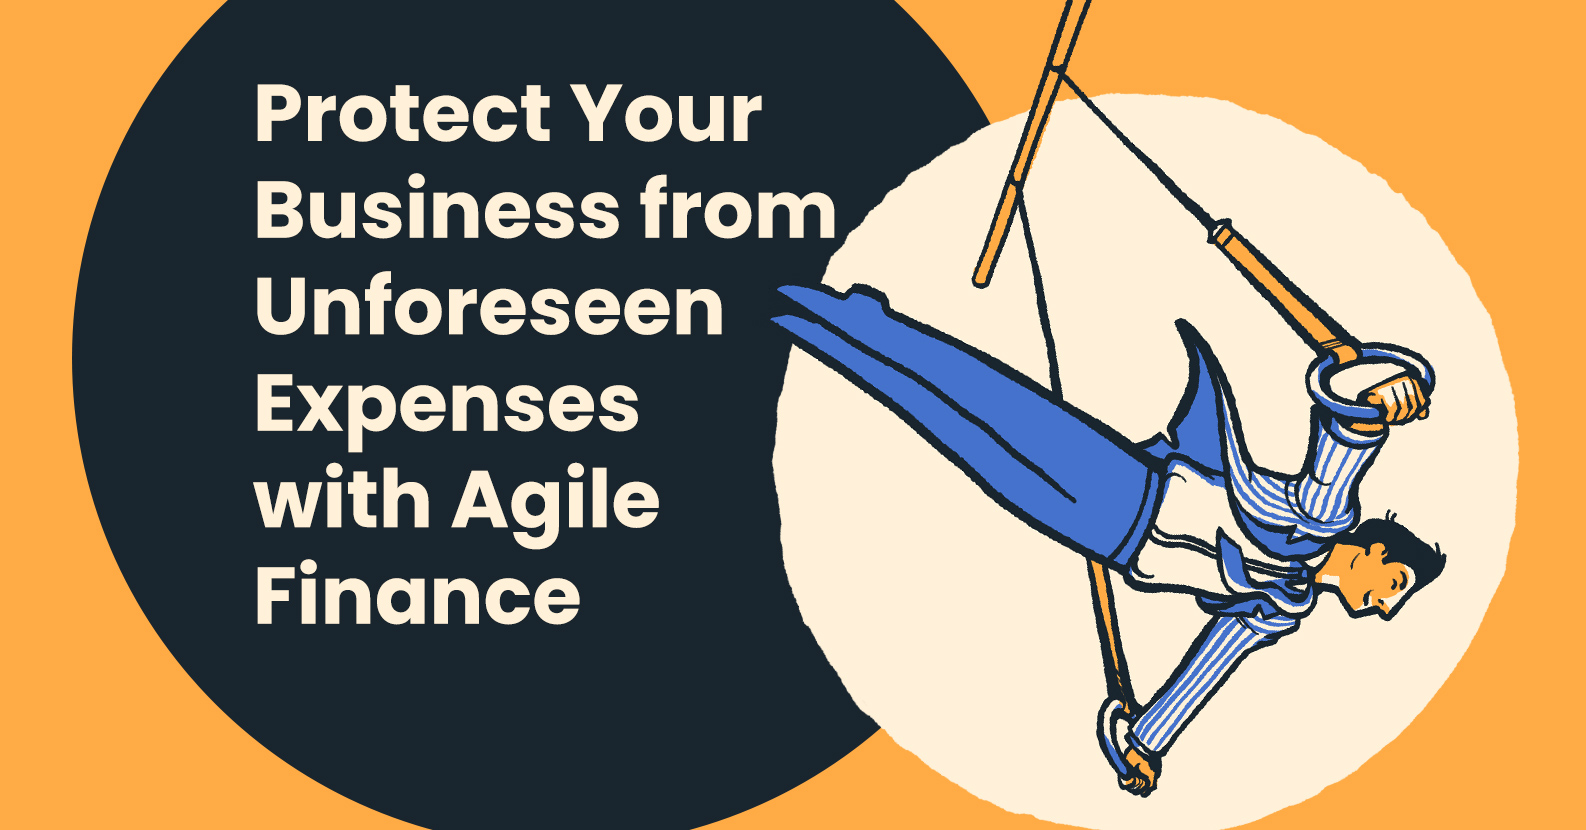 Protect Your Business from Unforeseen Expenses with Agile Finance